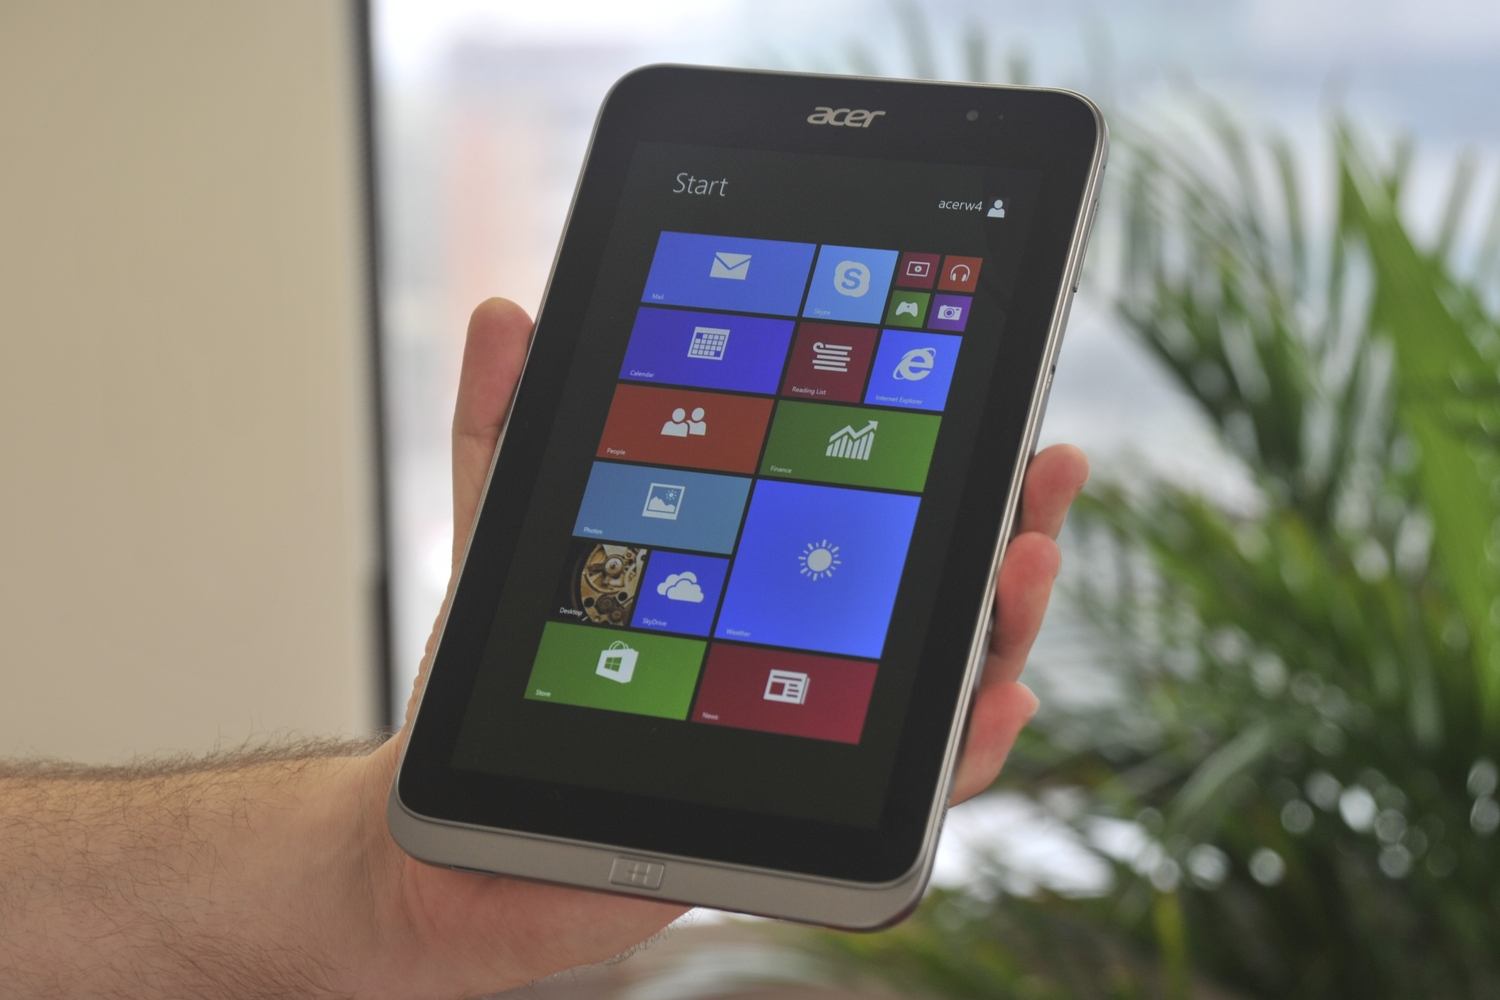 Acer Iconia W4 Review: Acer's 8in Iconia W4 Windows 8.1 ...